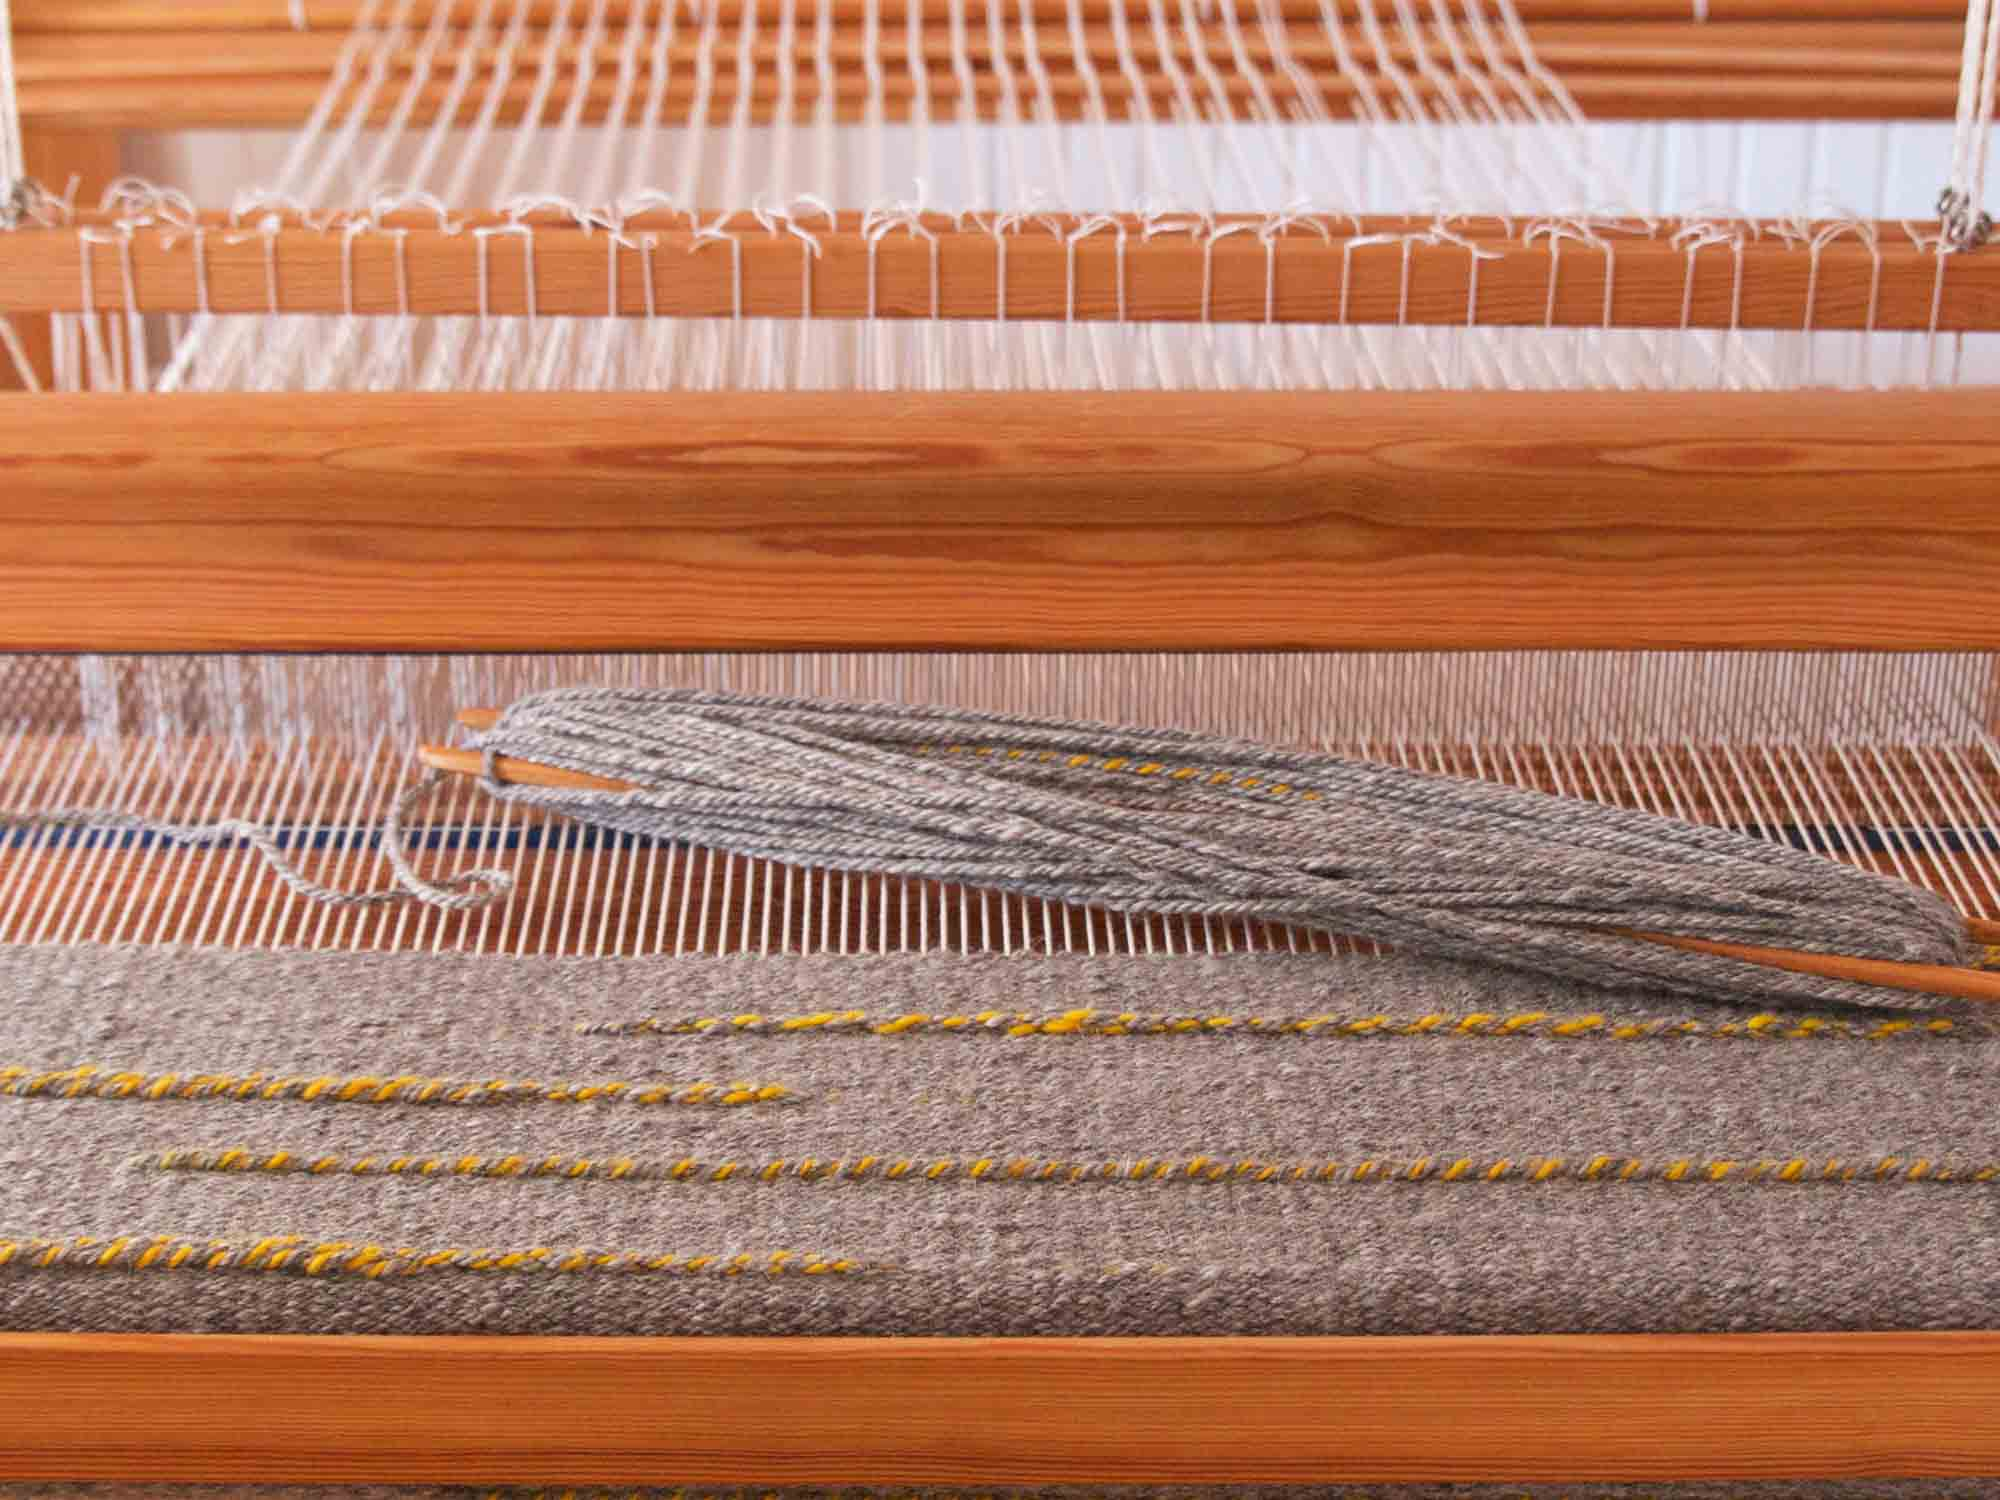 Floor loom, shuttle, wrap and yarn